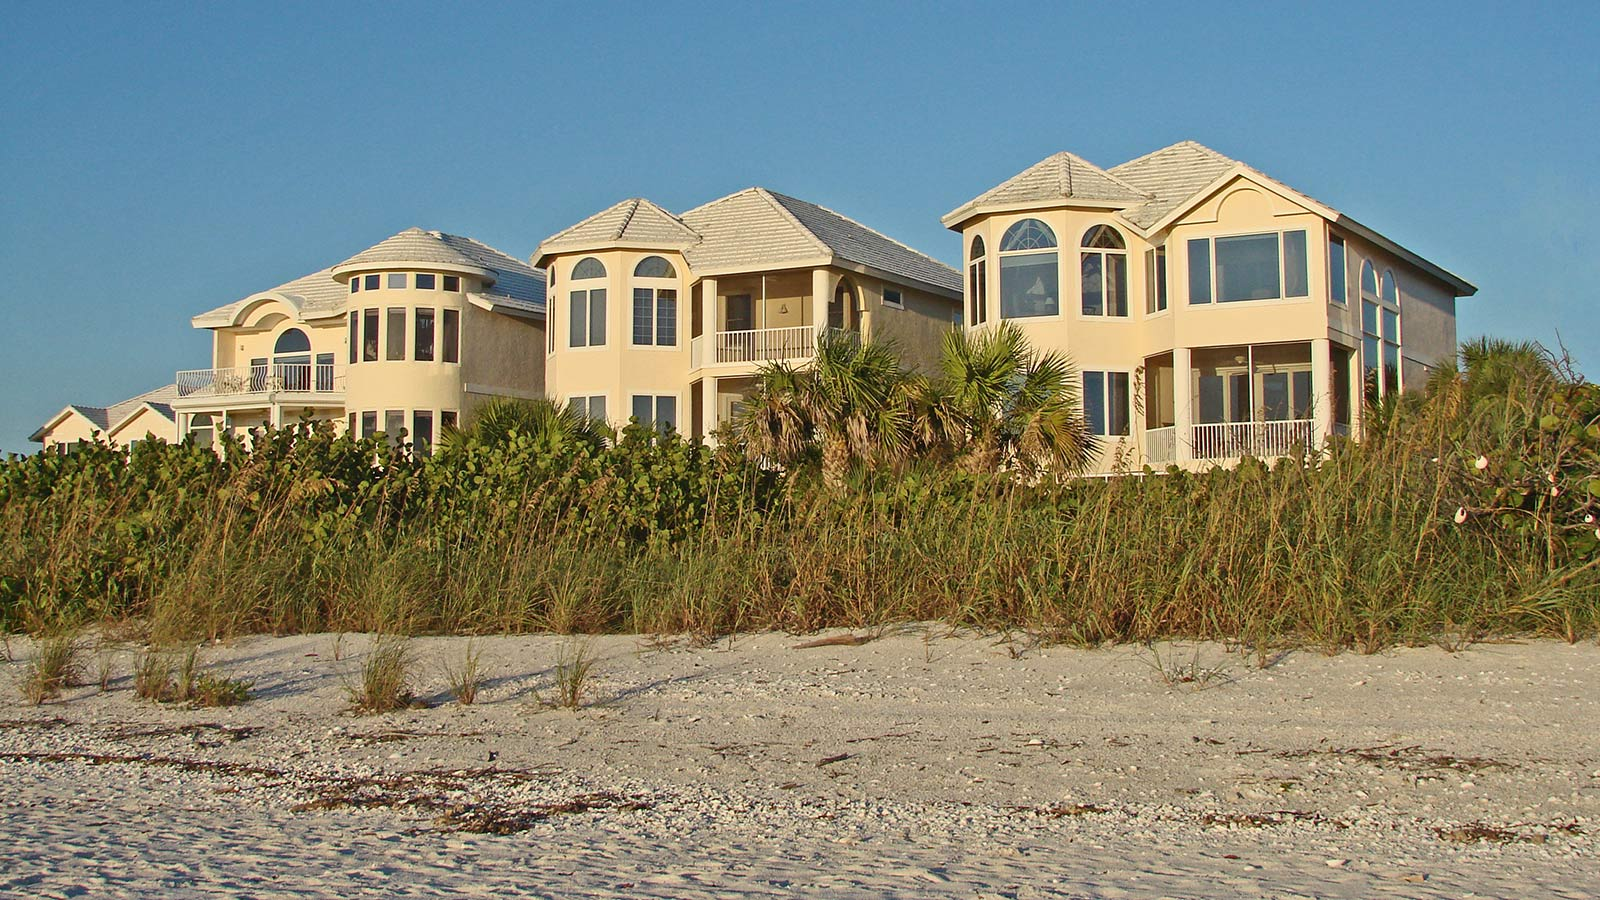 Hammock Dunes Contractor & Custom Home Builder - Brandon Building